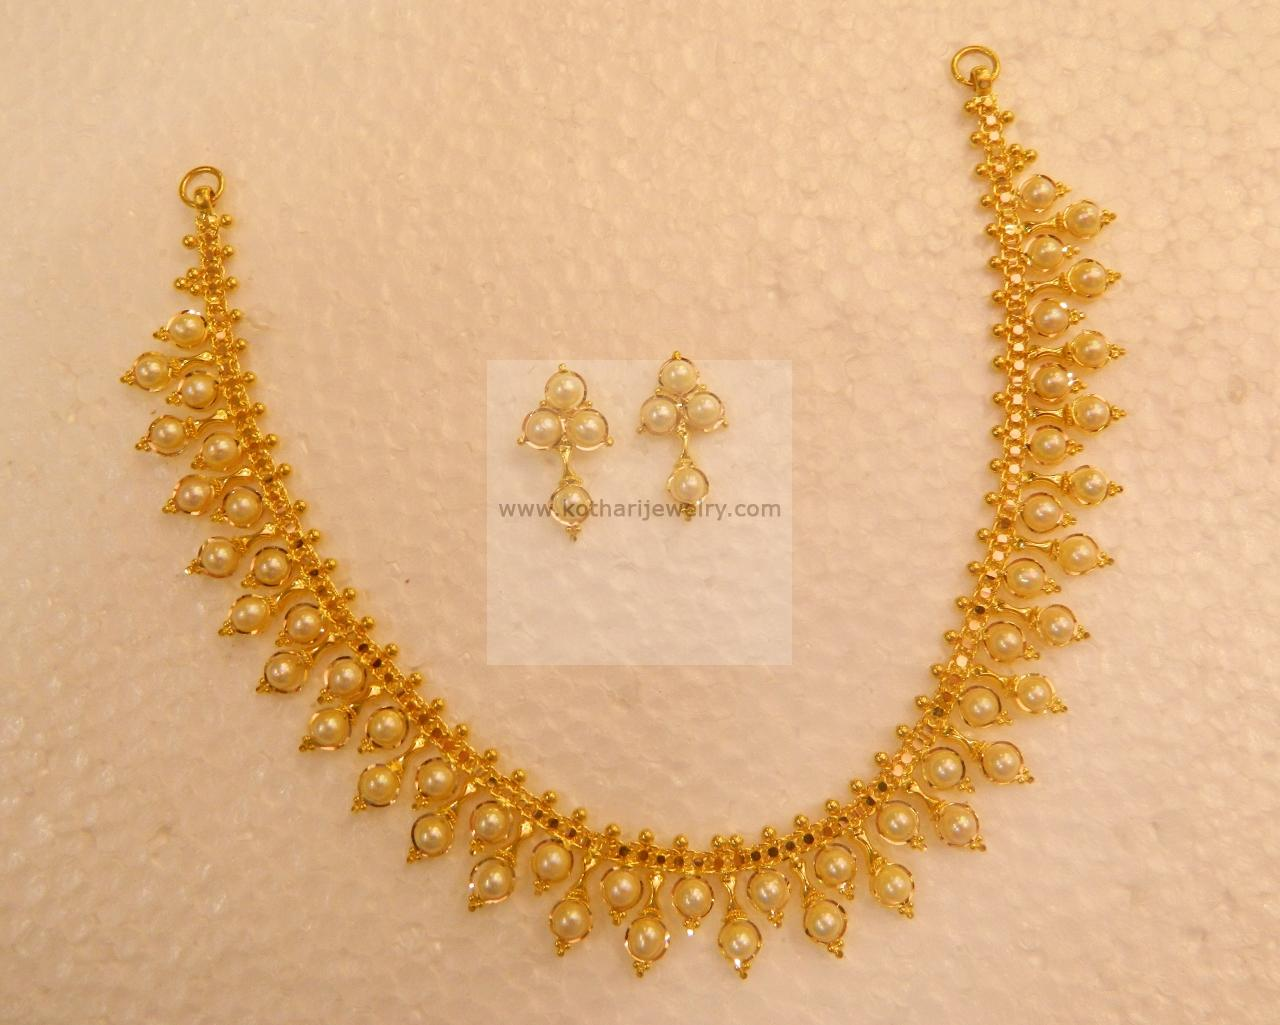 weight chains by view w jewellers necklaces in yellow y light set gold namaskar necklace